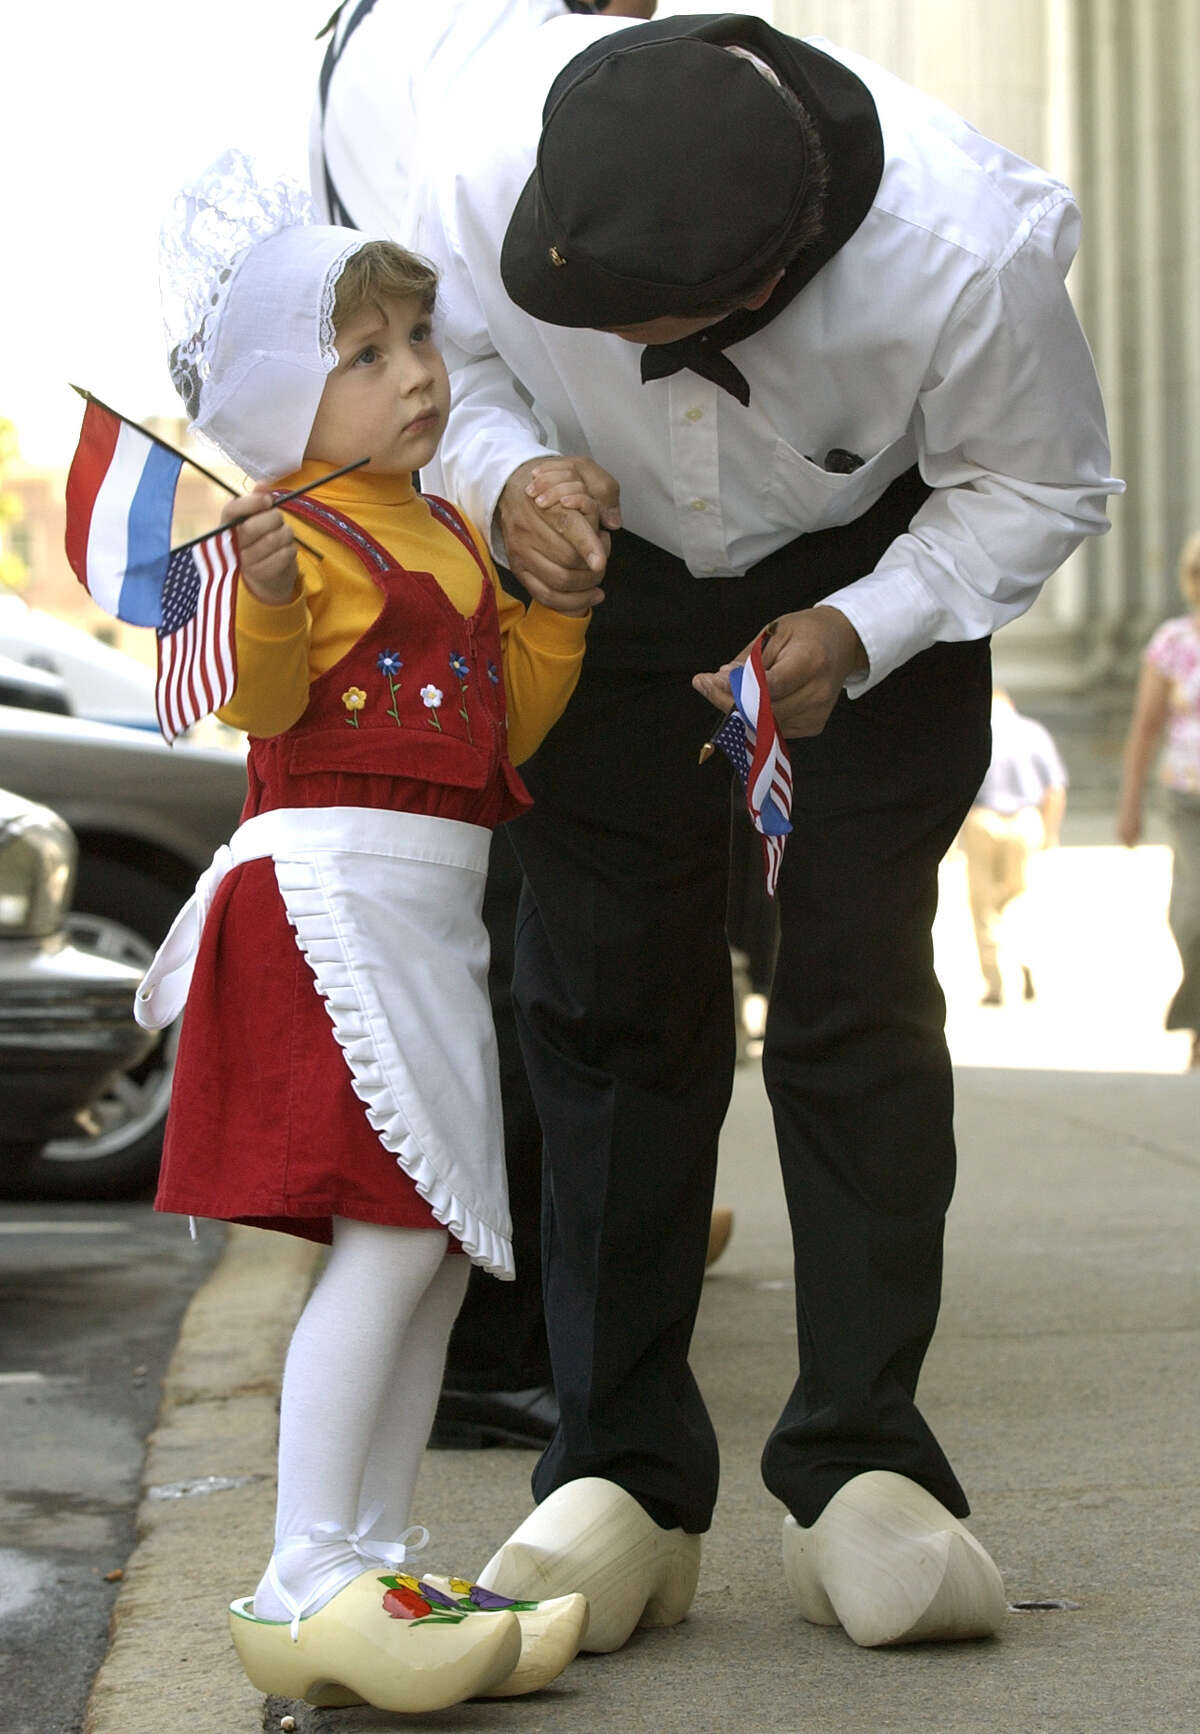 James Schermerhorn of Guilderland speaks with his daughter Lauren, age 4, before the 2004 Tulip Festival kickoff on State Street in Albany. (Will Waldron/Times Union)